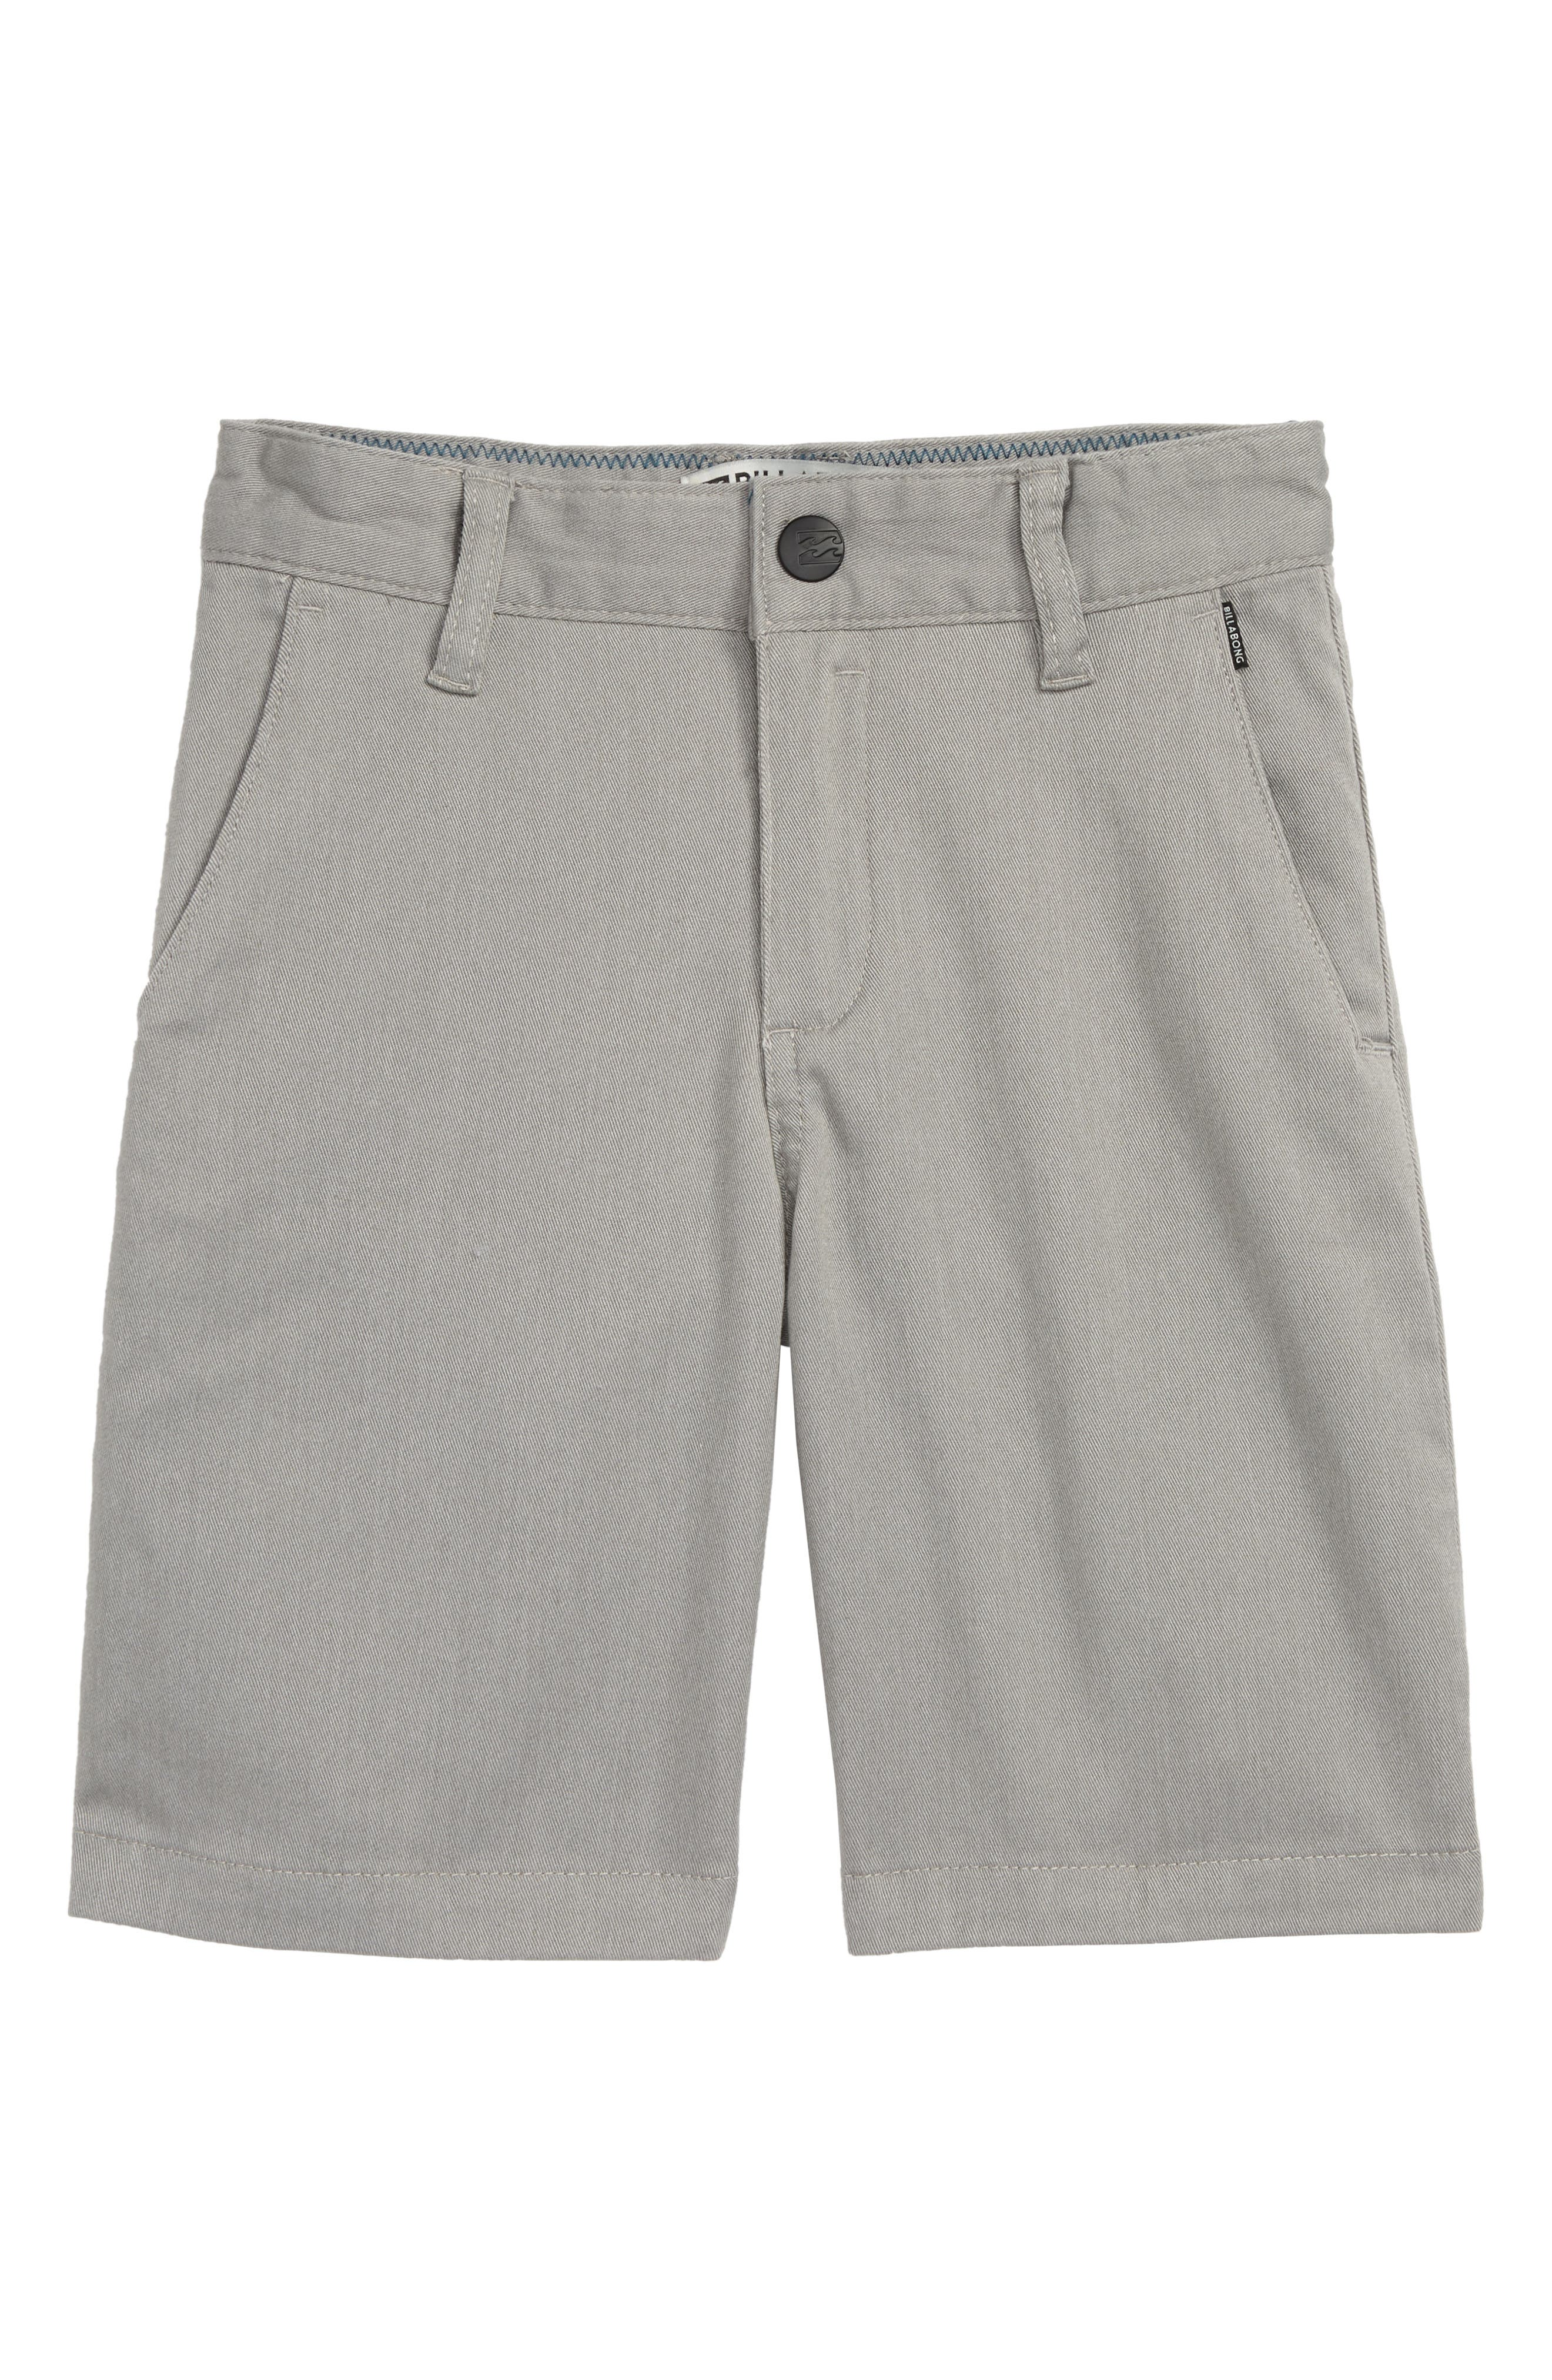 Carter Stretch Shorts,                             Main thumbnail 1, color,                             Grey Heather